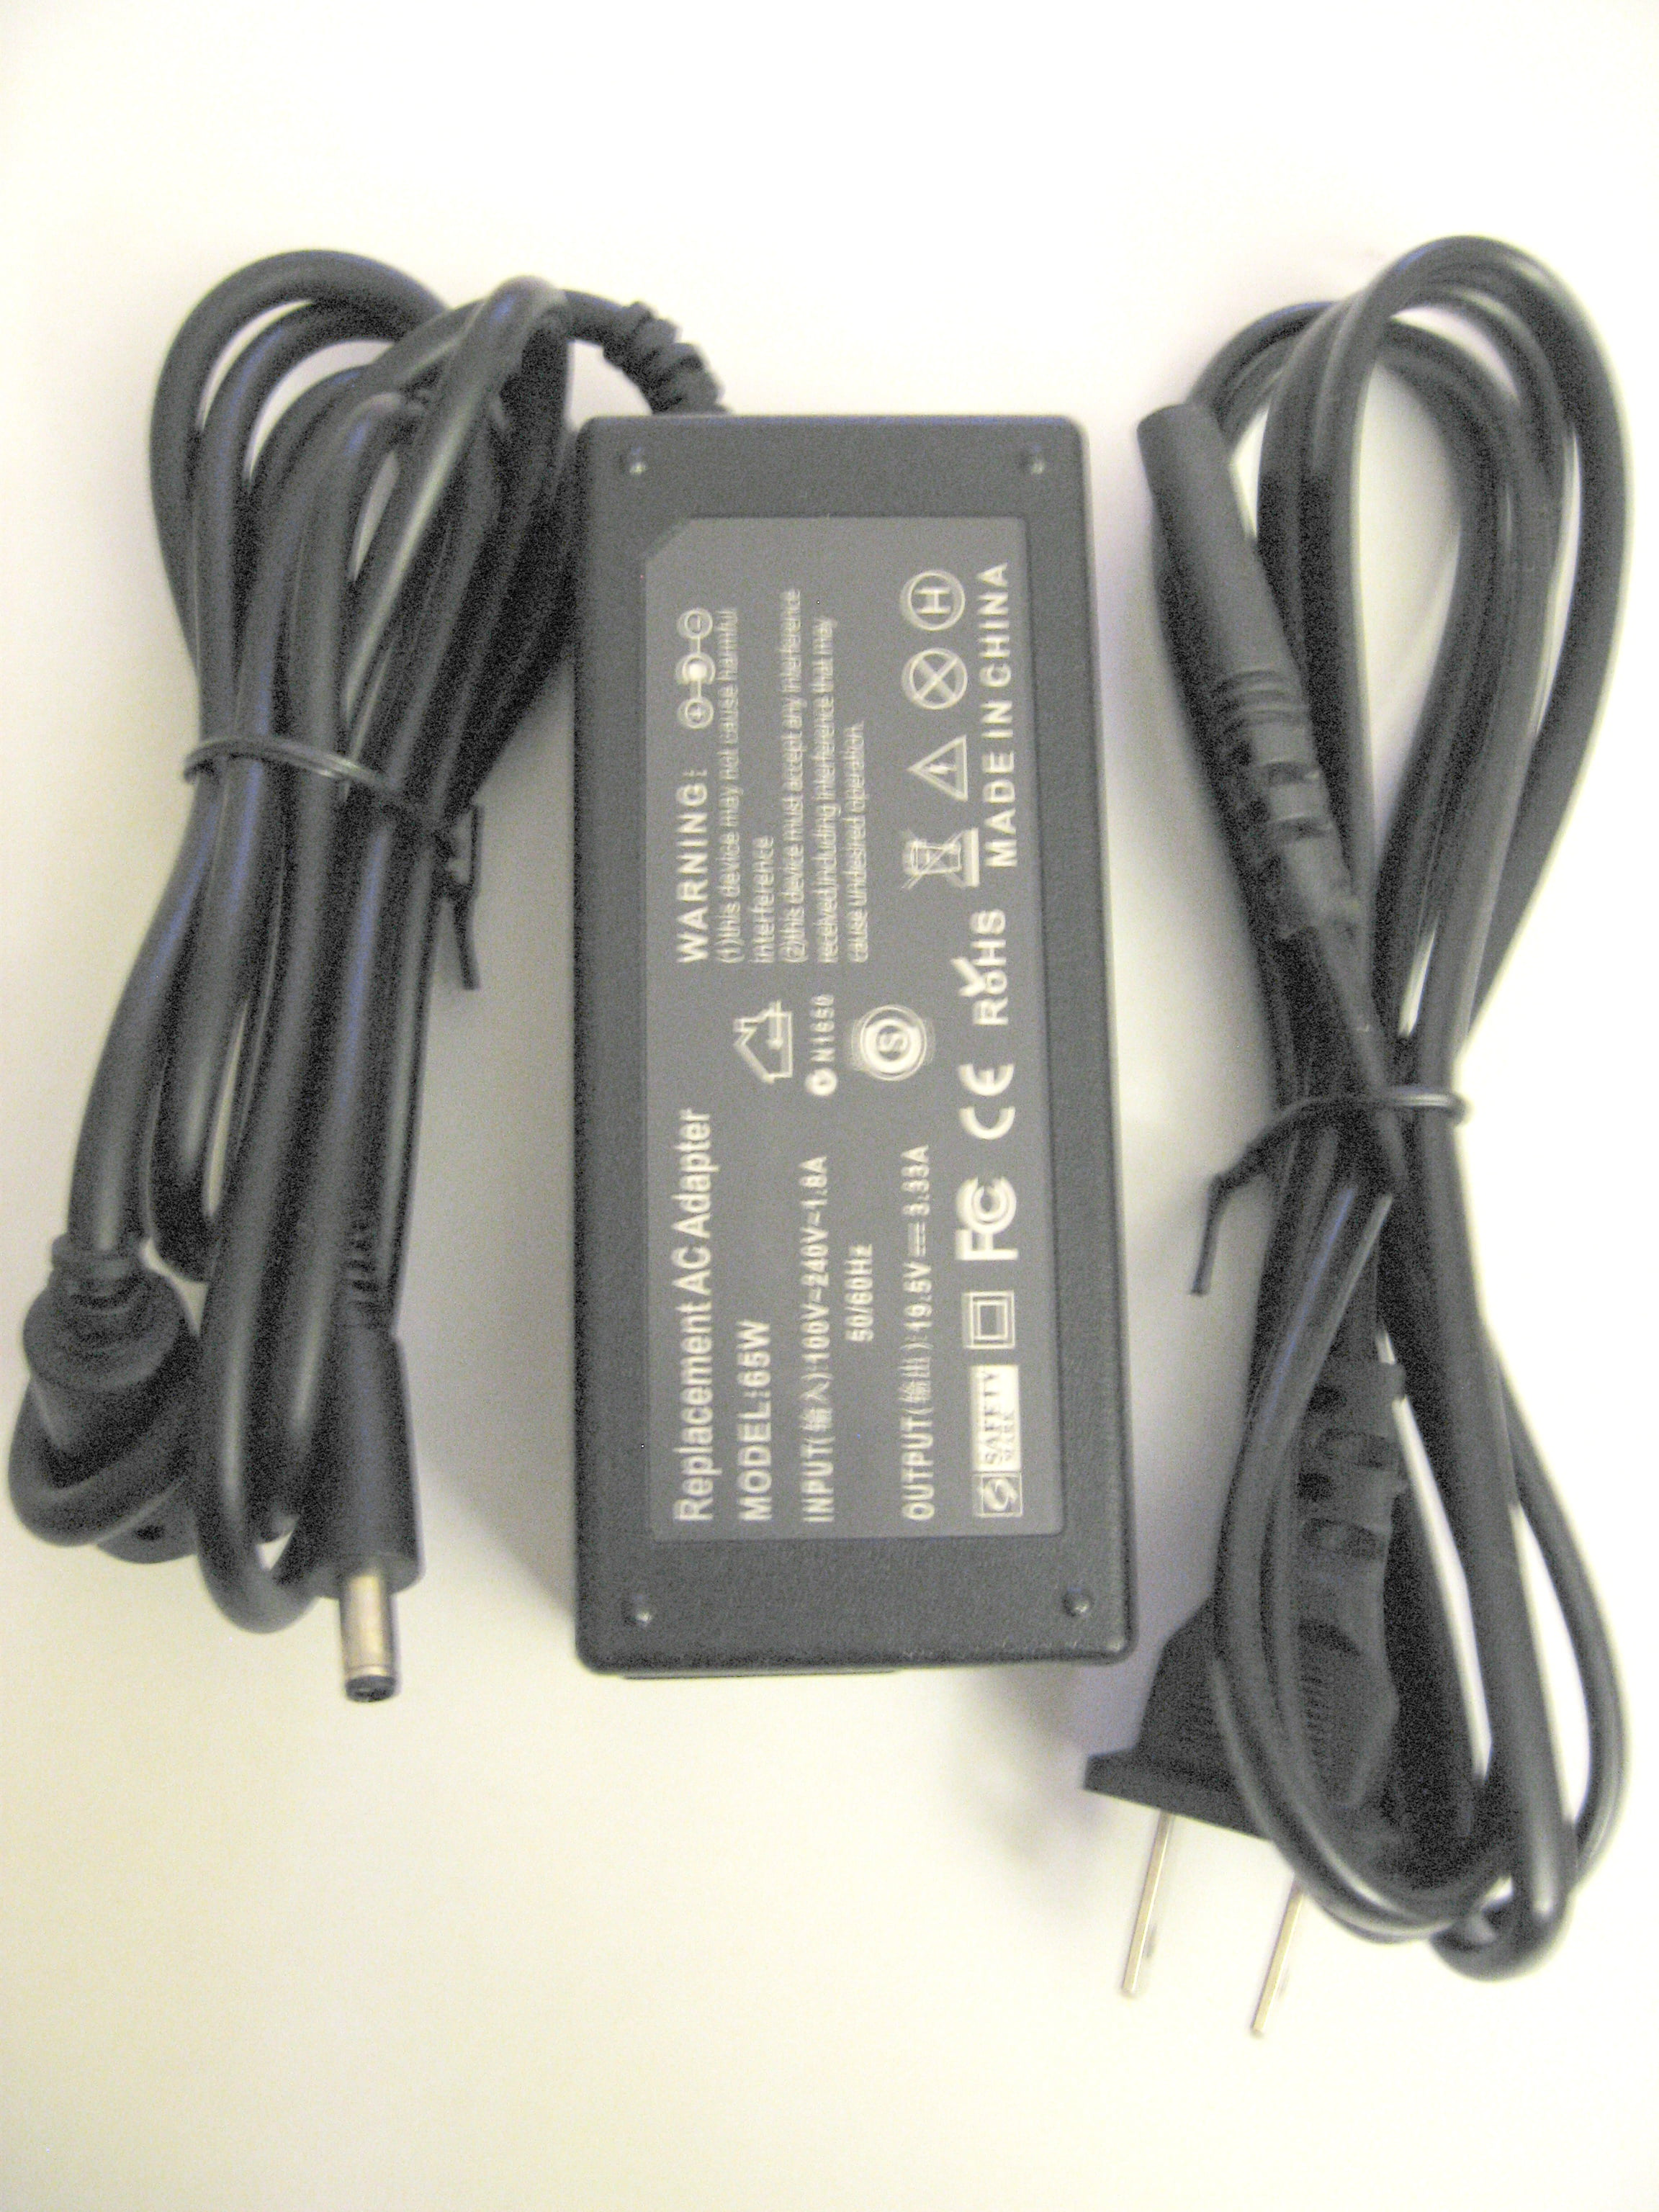 AC Adapter Charger for Dell Inspiron 15 5000 Series, 15 5559, 15